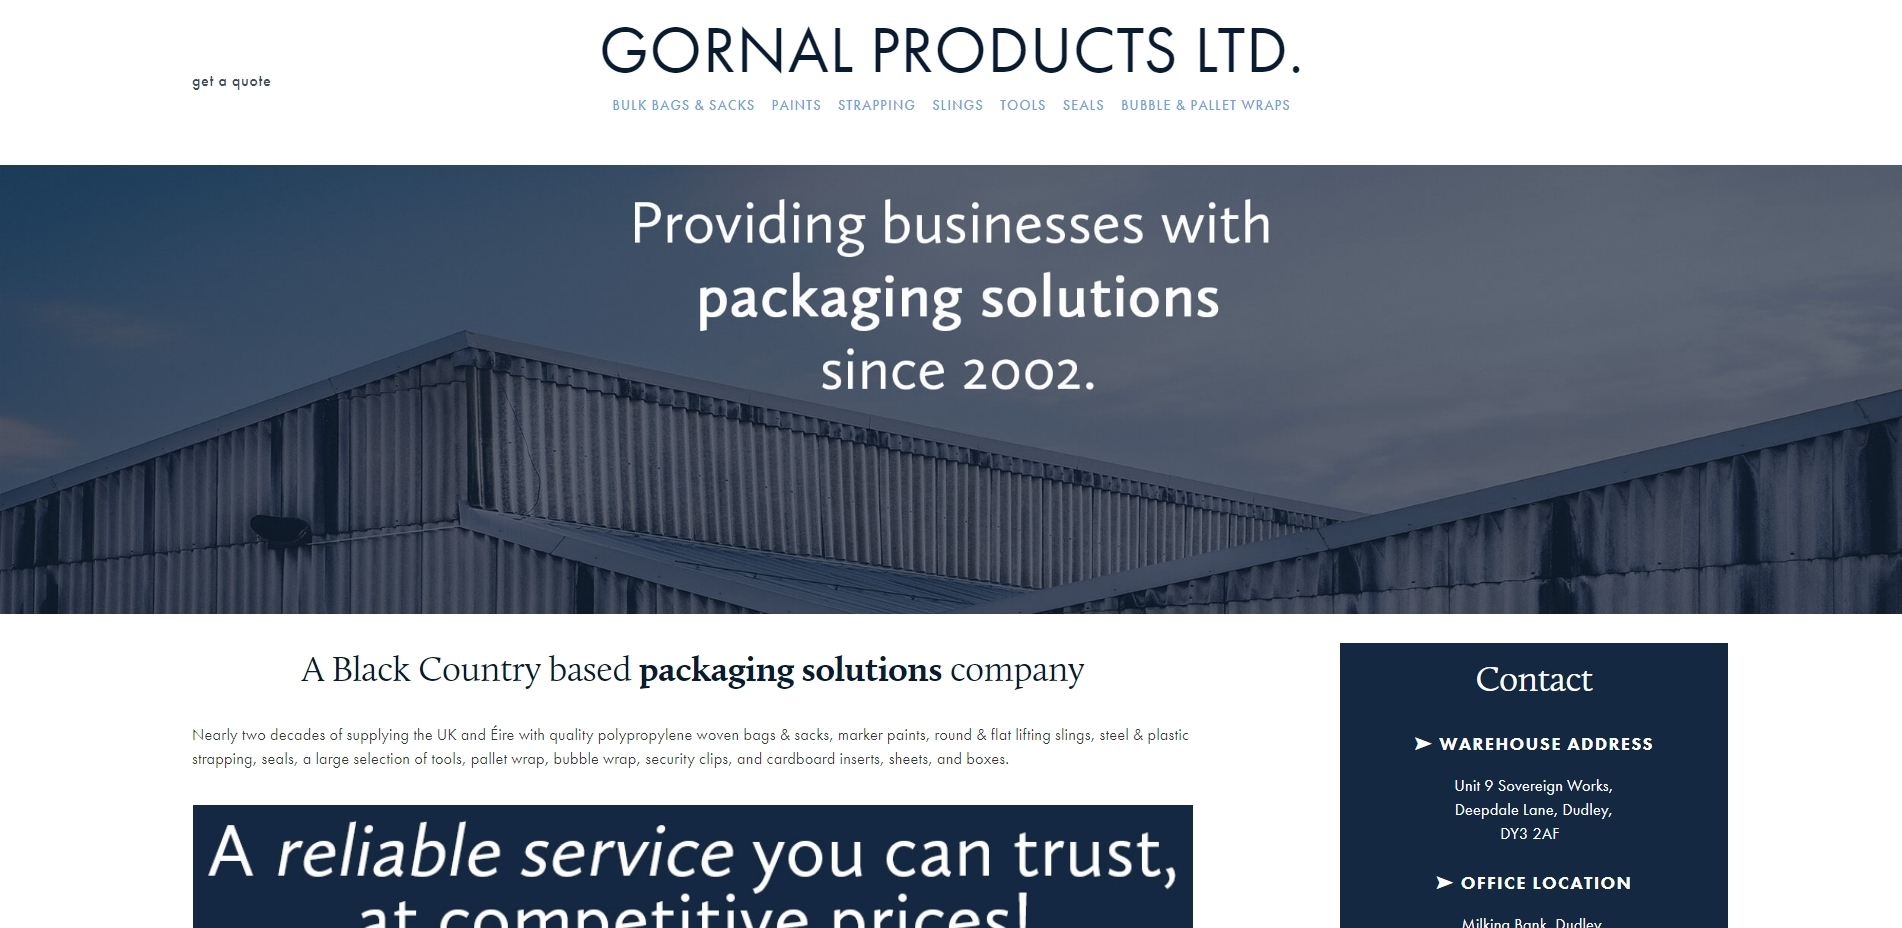 Gornal Products - packaging and transport solutions company website